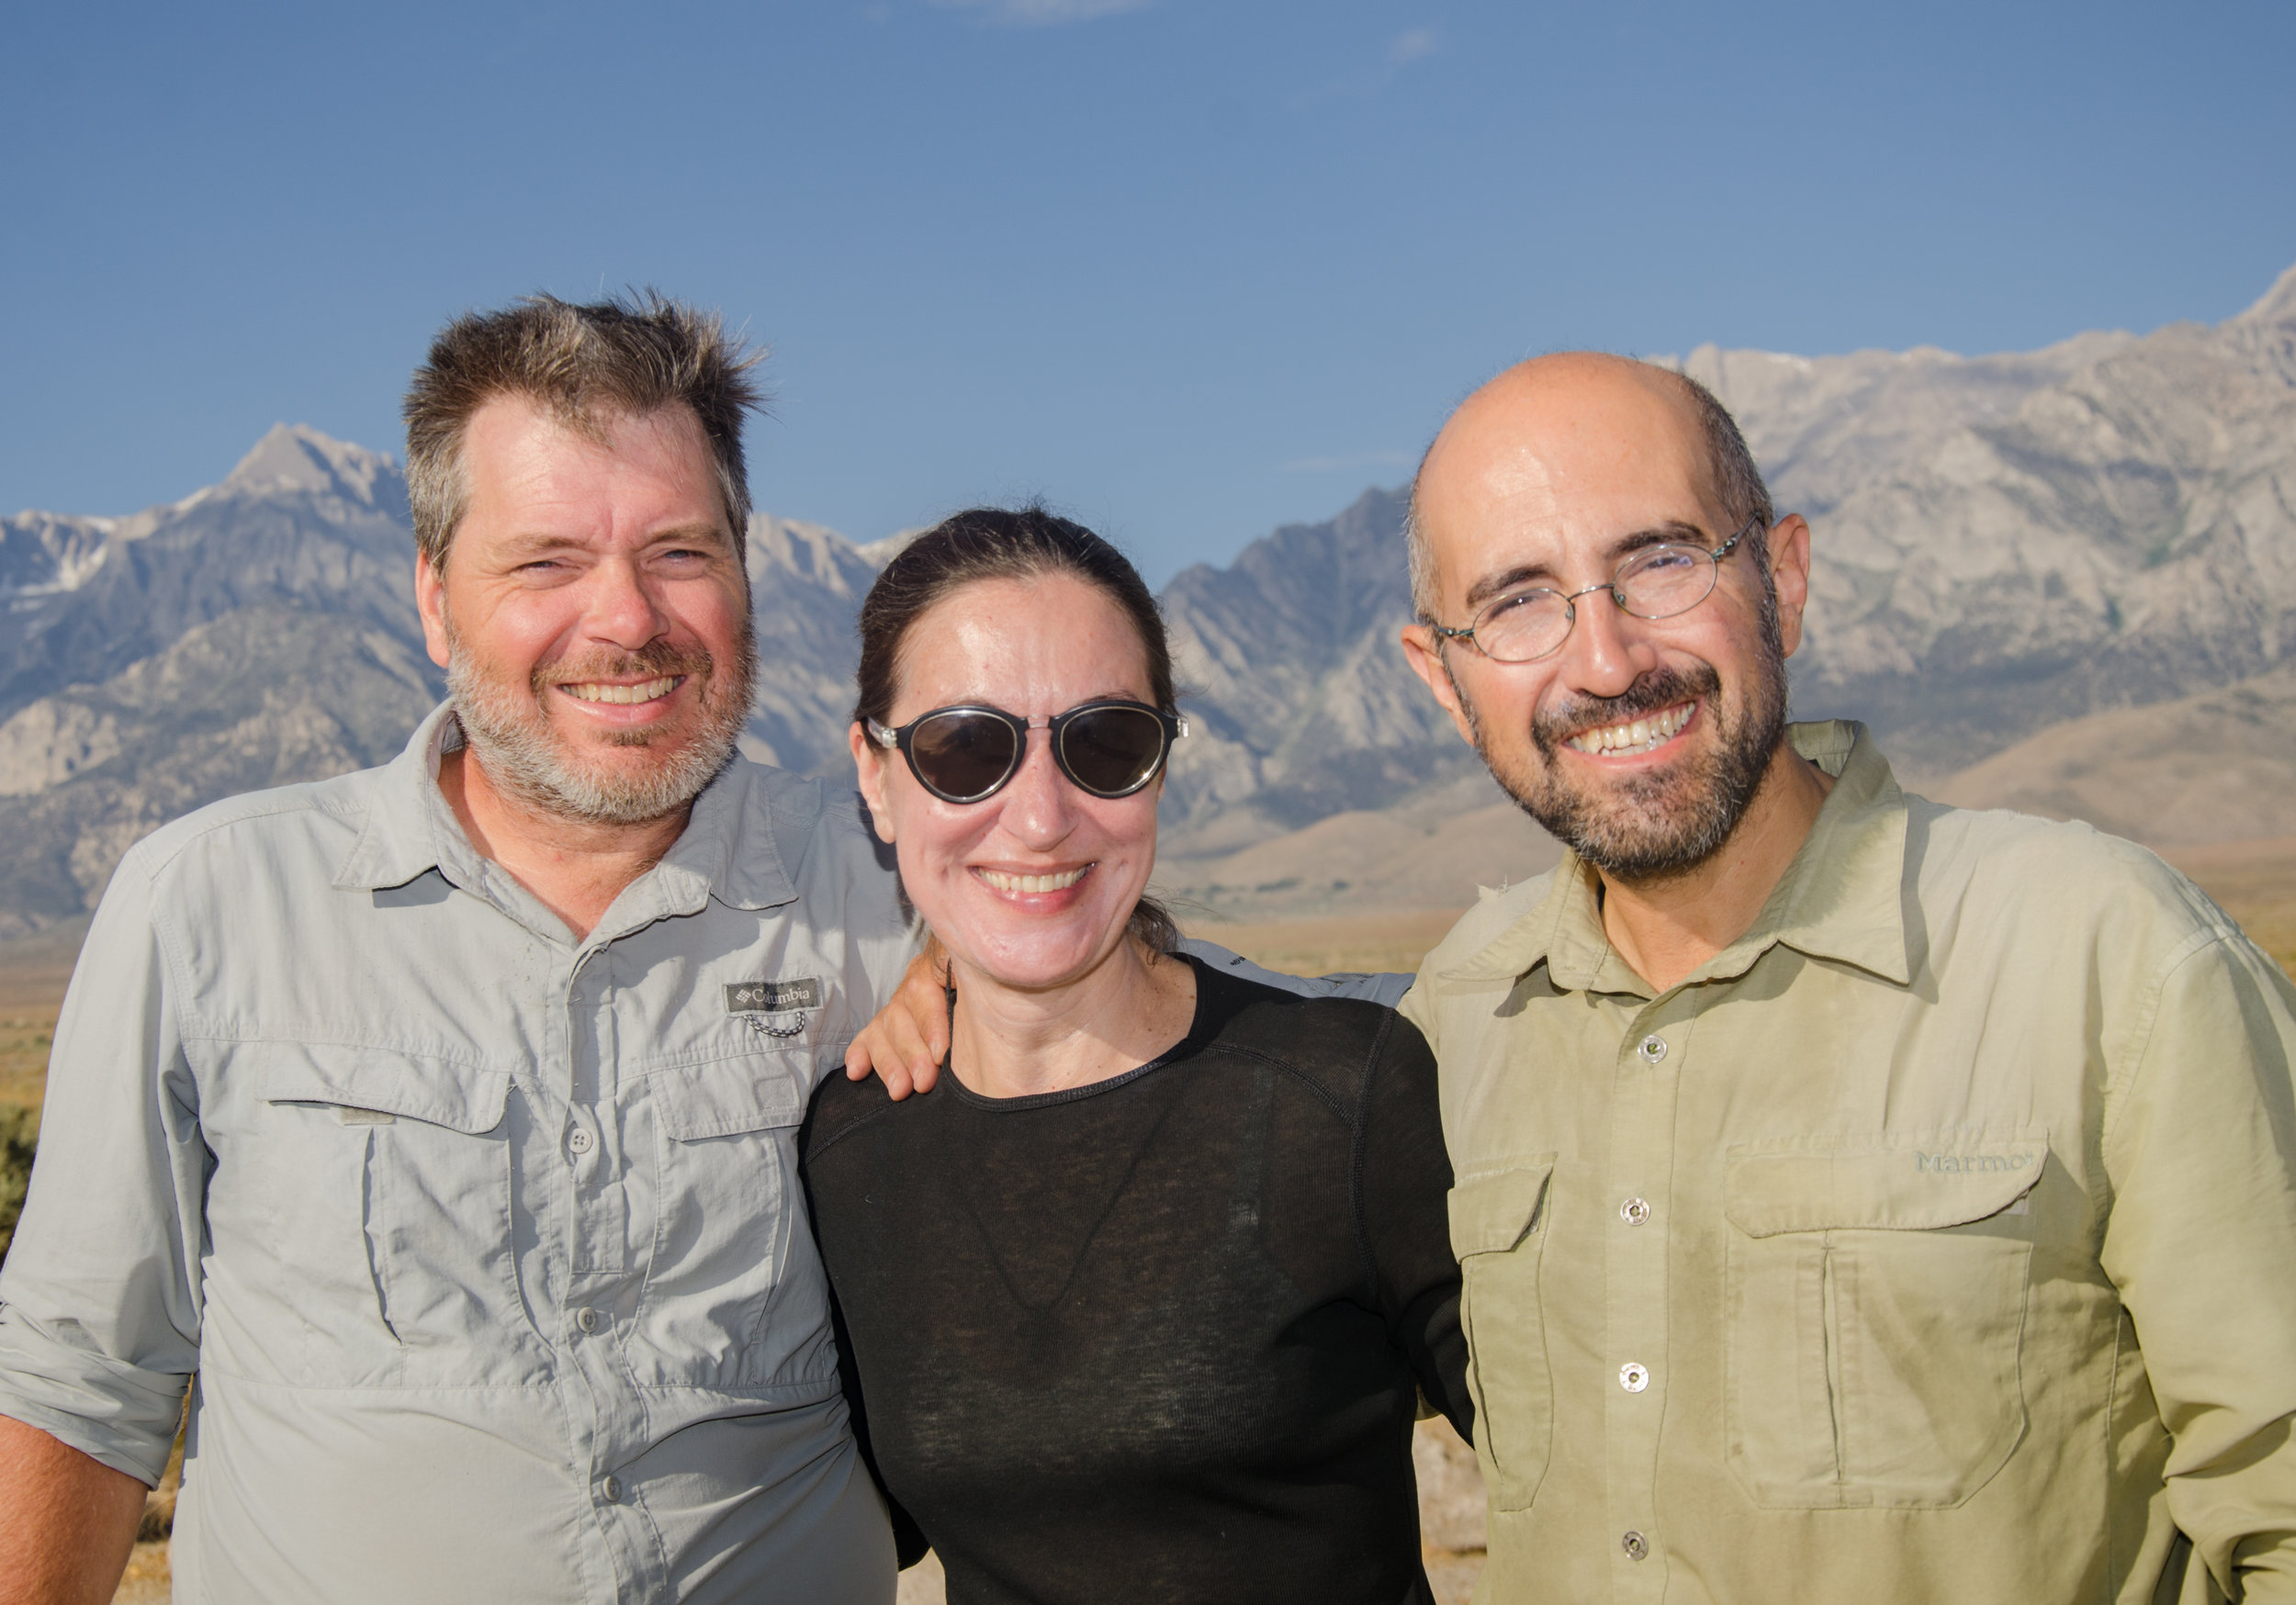 JMT hiker Georgios and friends from Greece and Canada